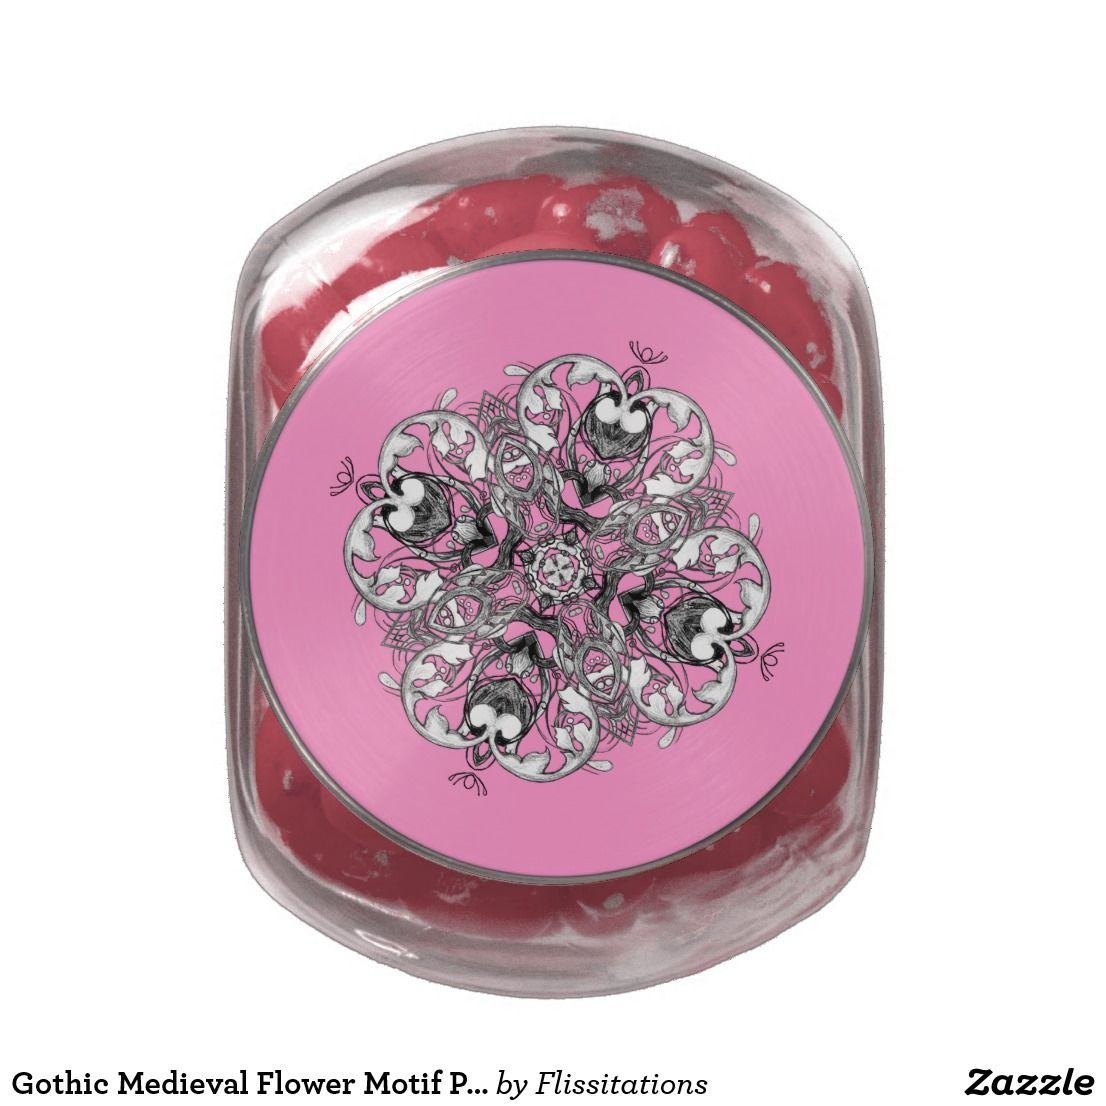 Gothic Medieval Flower Motif Pink Black and White Glass Candy Jar ...